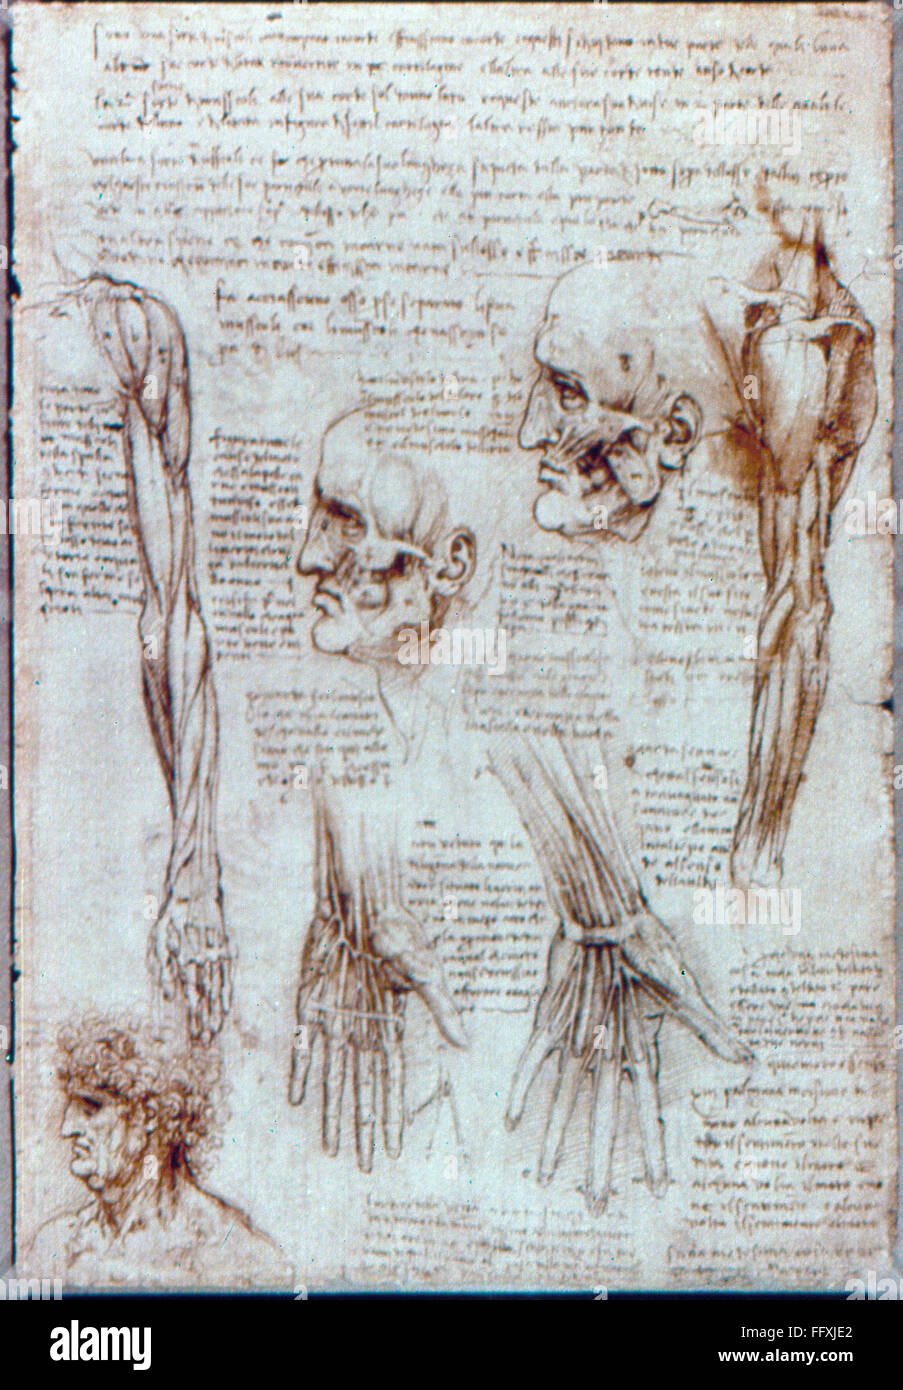 DA VINCI: ANATOMY, c1510. /nPen and ink studies of heads and arms ...